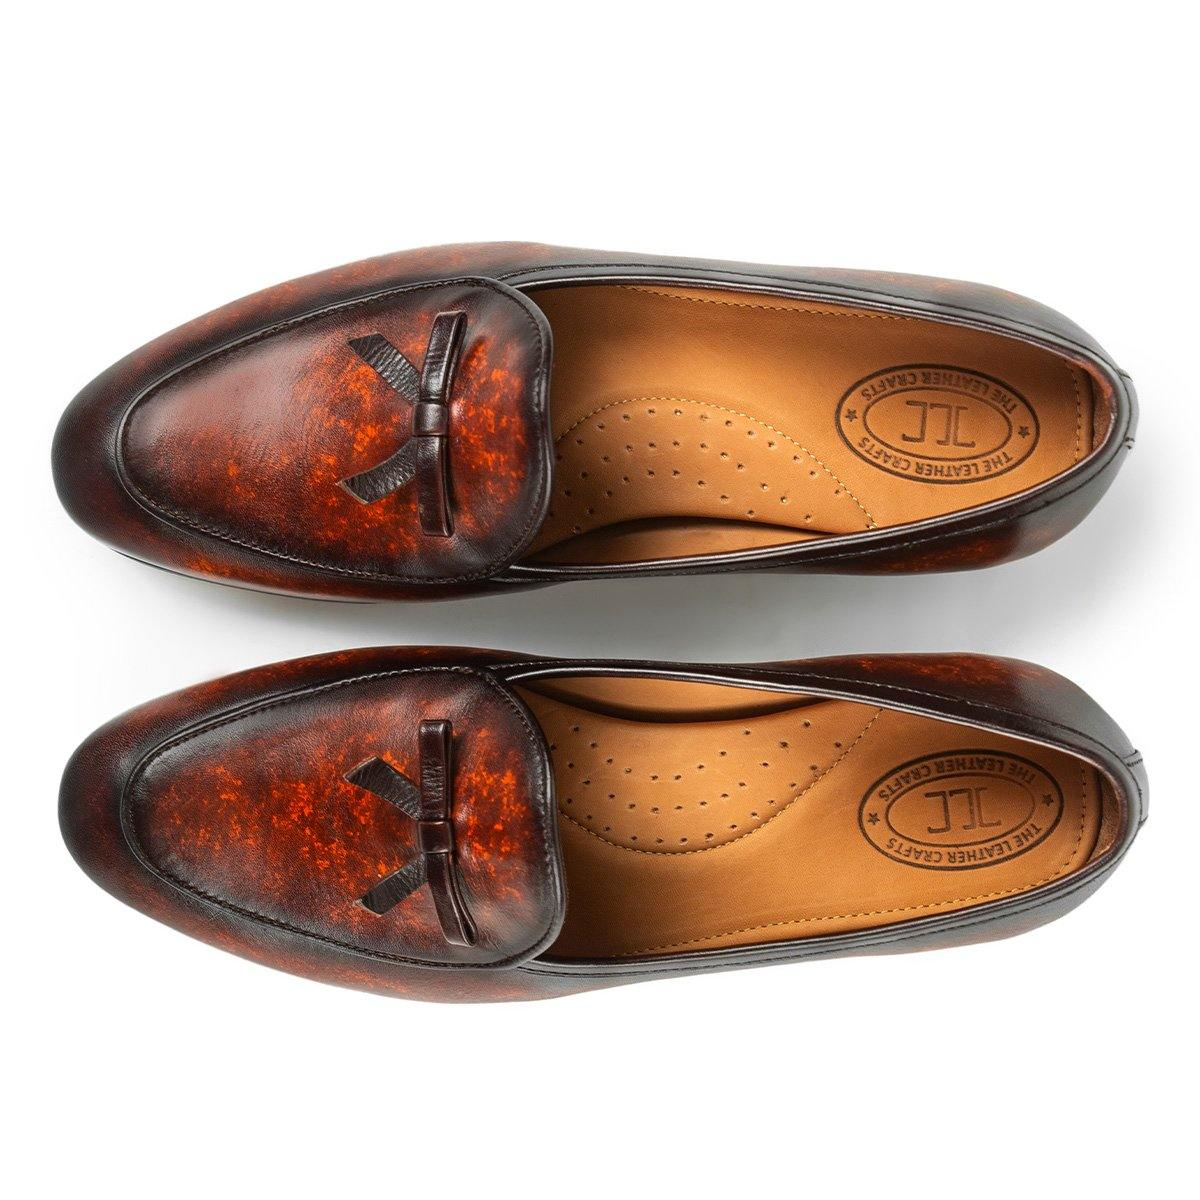 Mayfair - Belgian Loafers in Cognac - TLC - The Leather Crafts